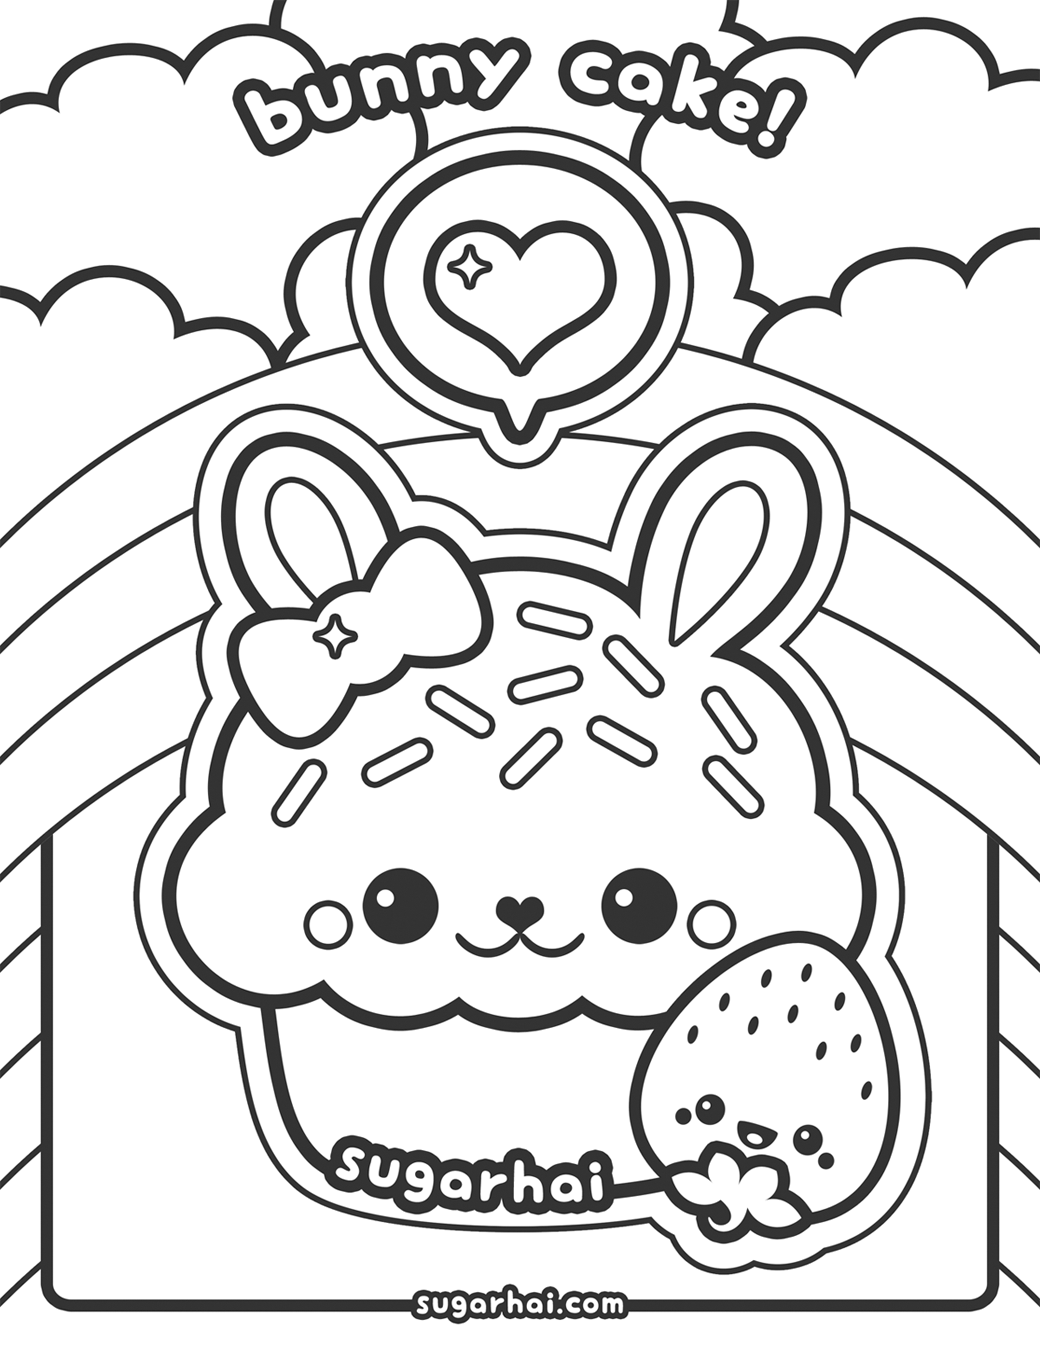 Printable coloring pages bunnies - Free Bunny Cake Coloring Page